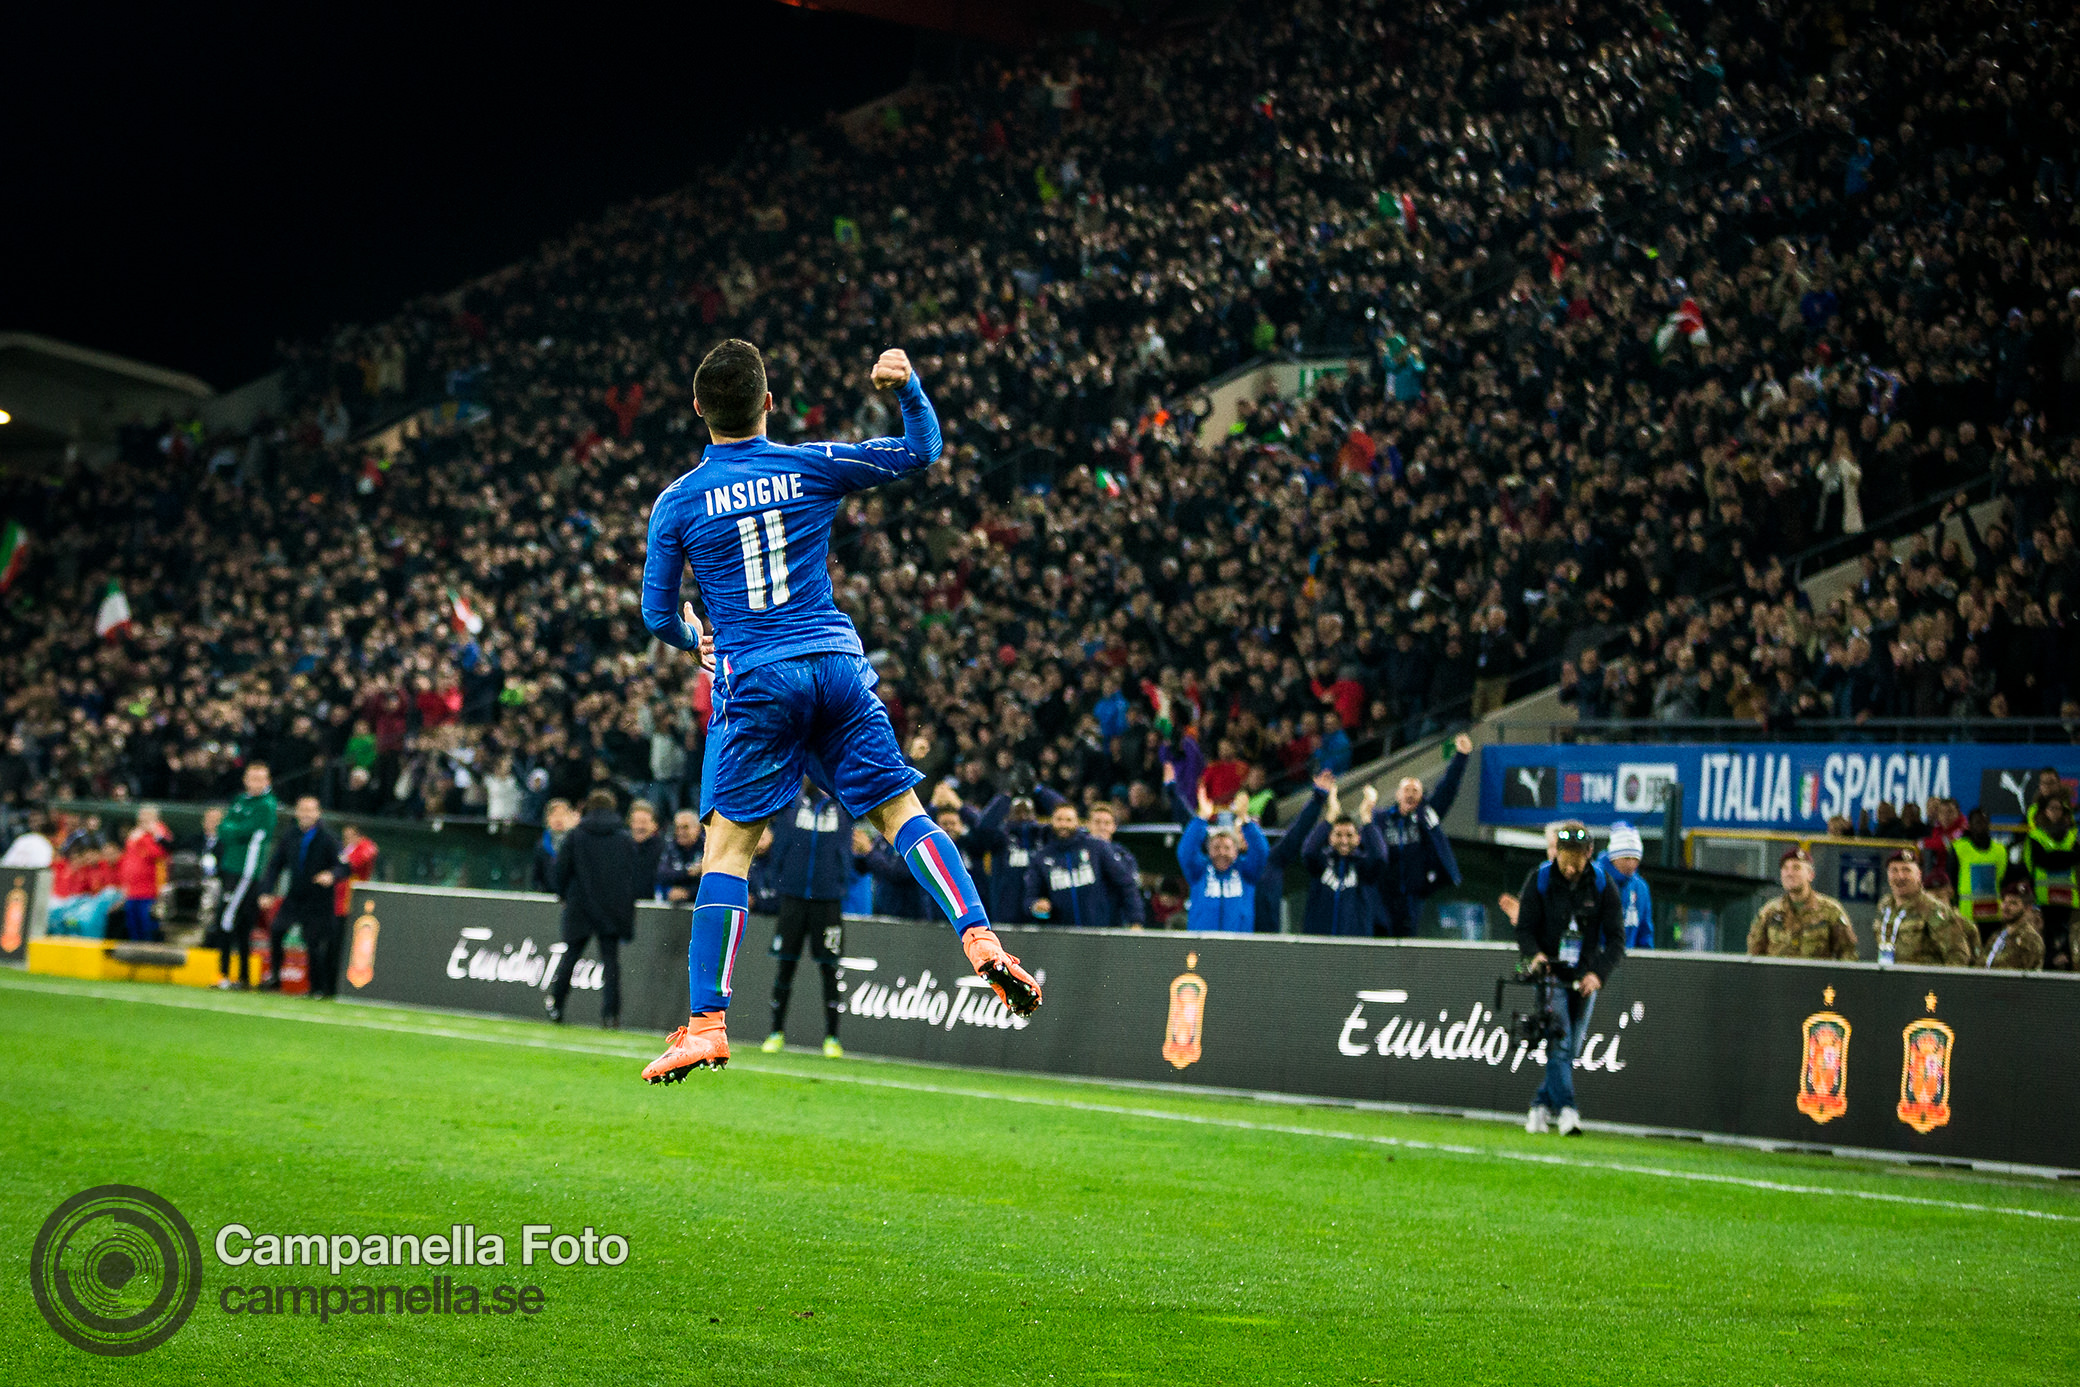 Italy vs Spain - Michael Campanella Photography